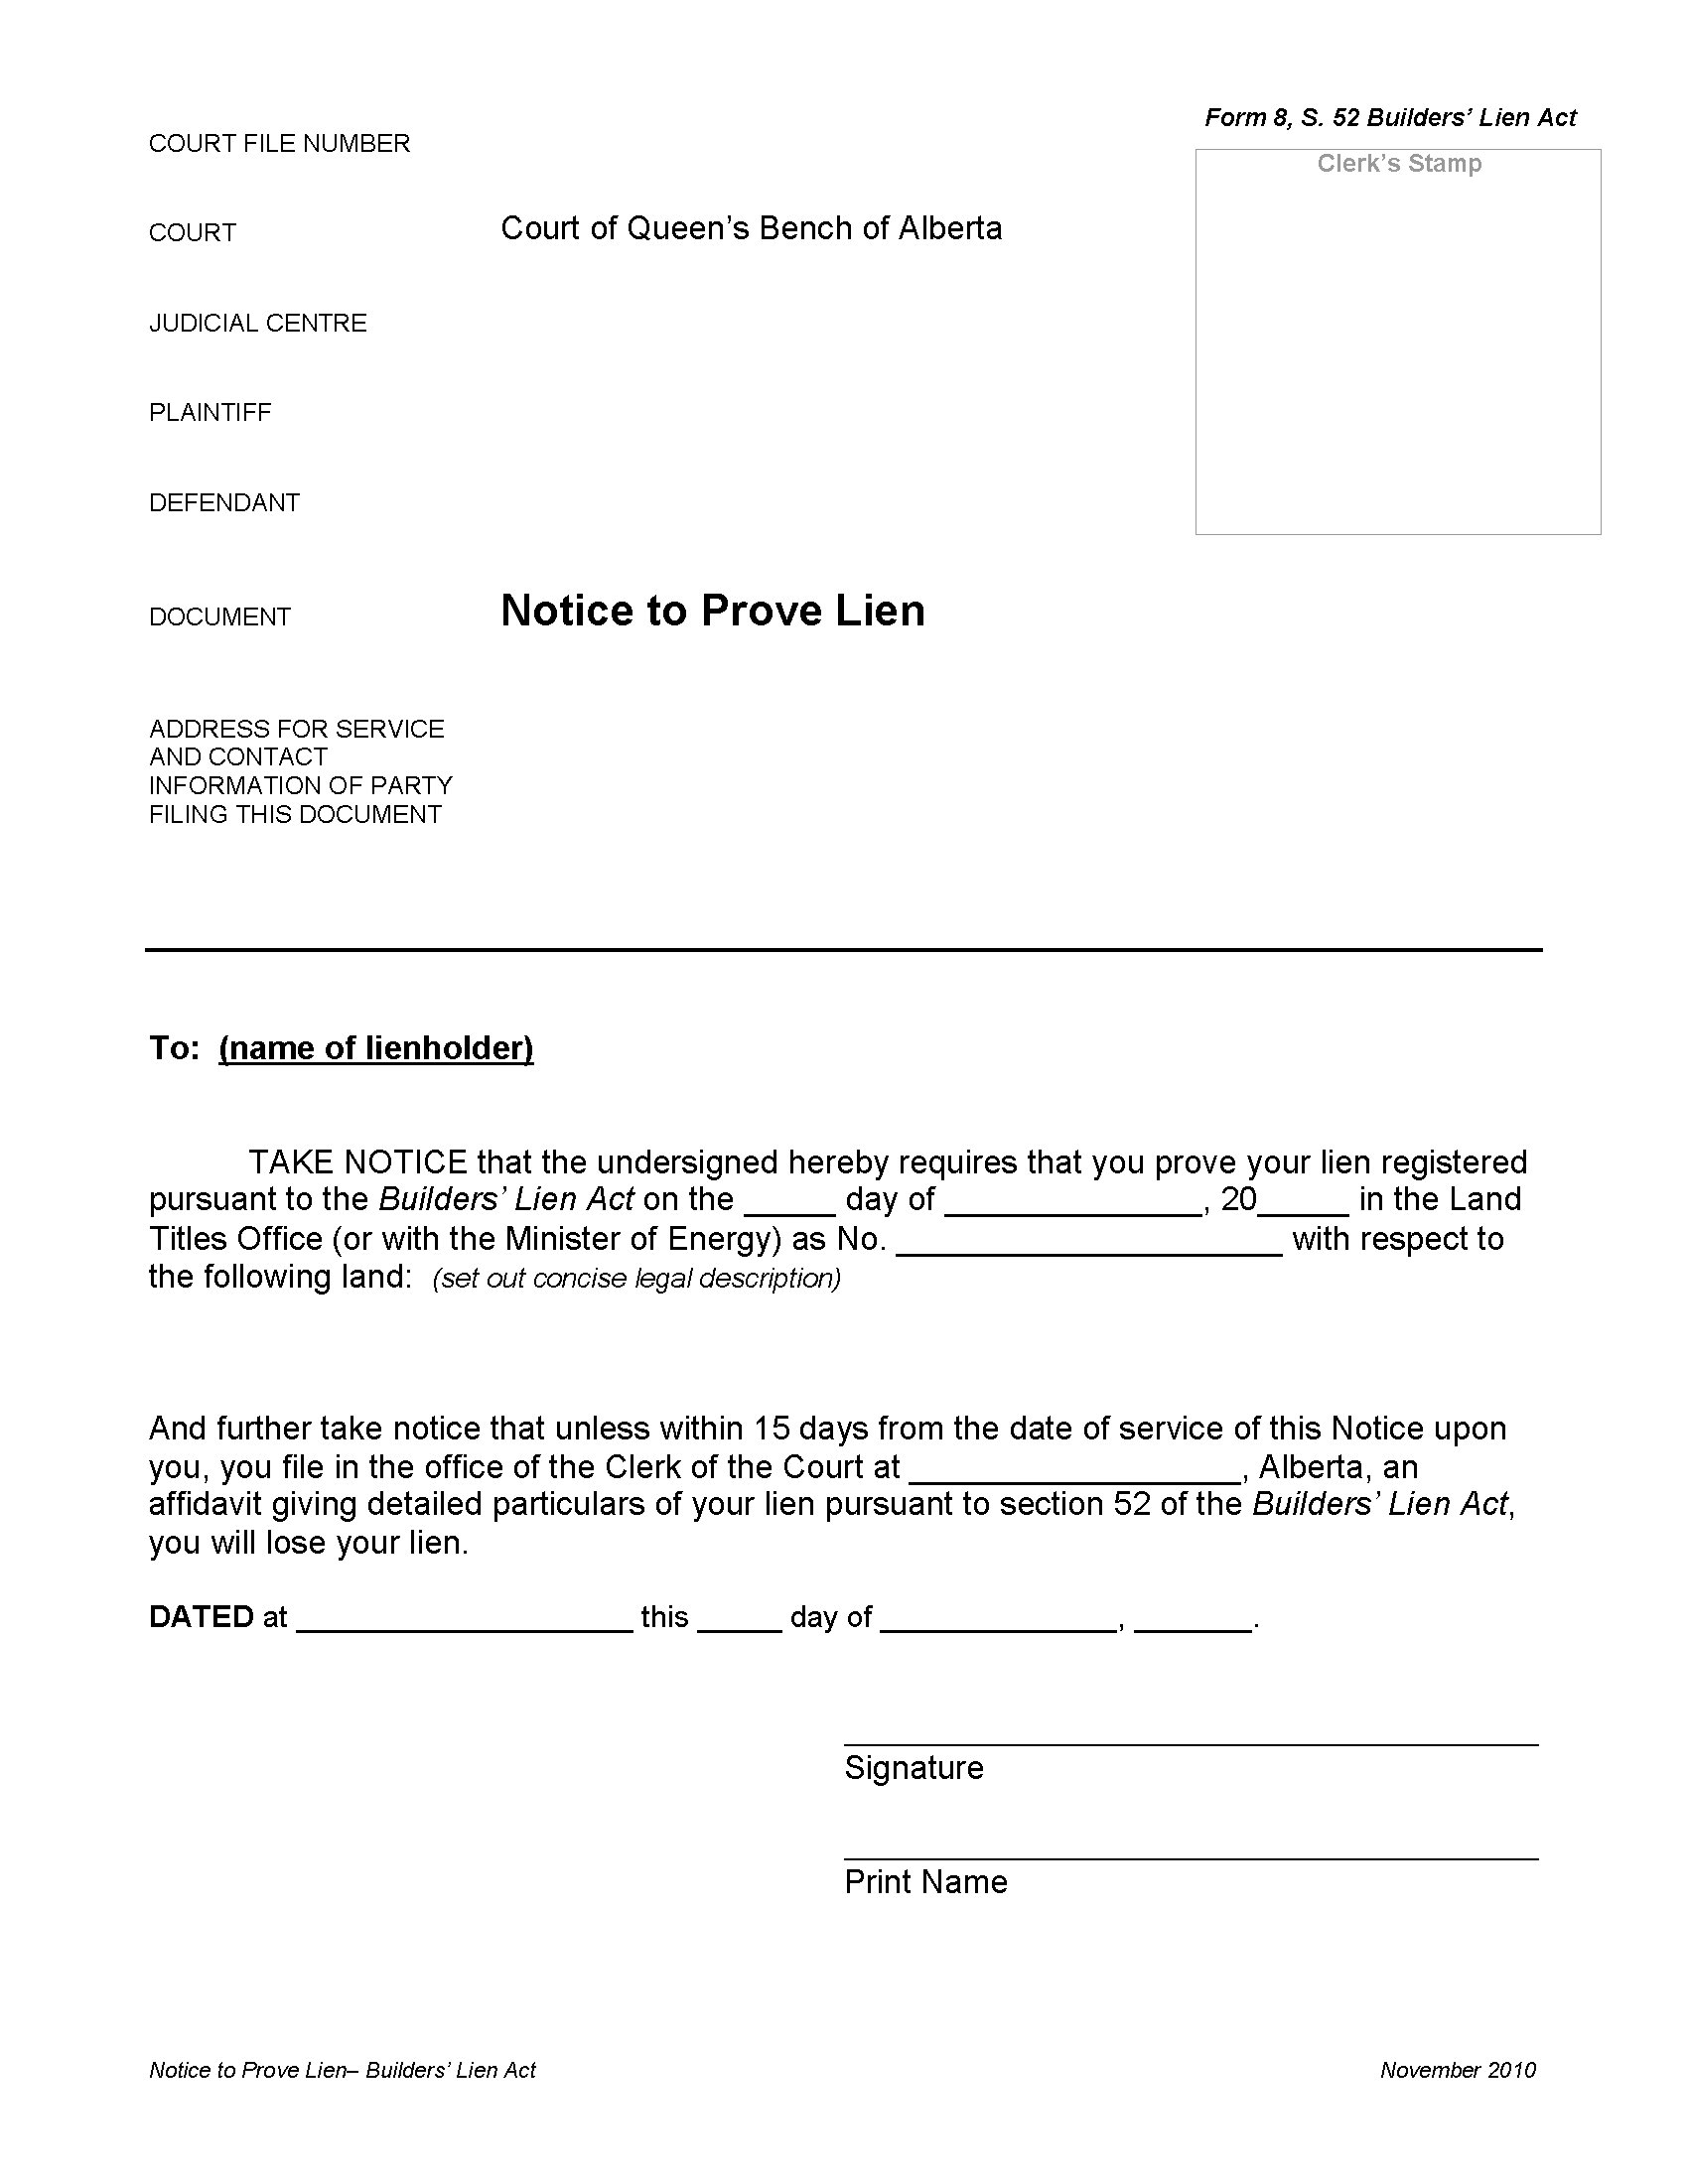 Letter Of Intent to File A Lien Template - Letter Intent to File Lien Preview Alberta Notice Prove Builders